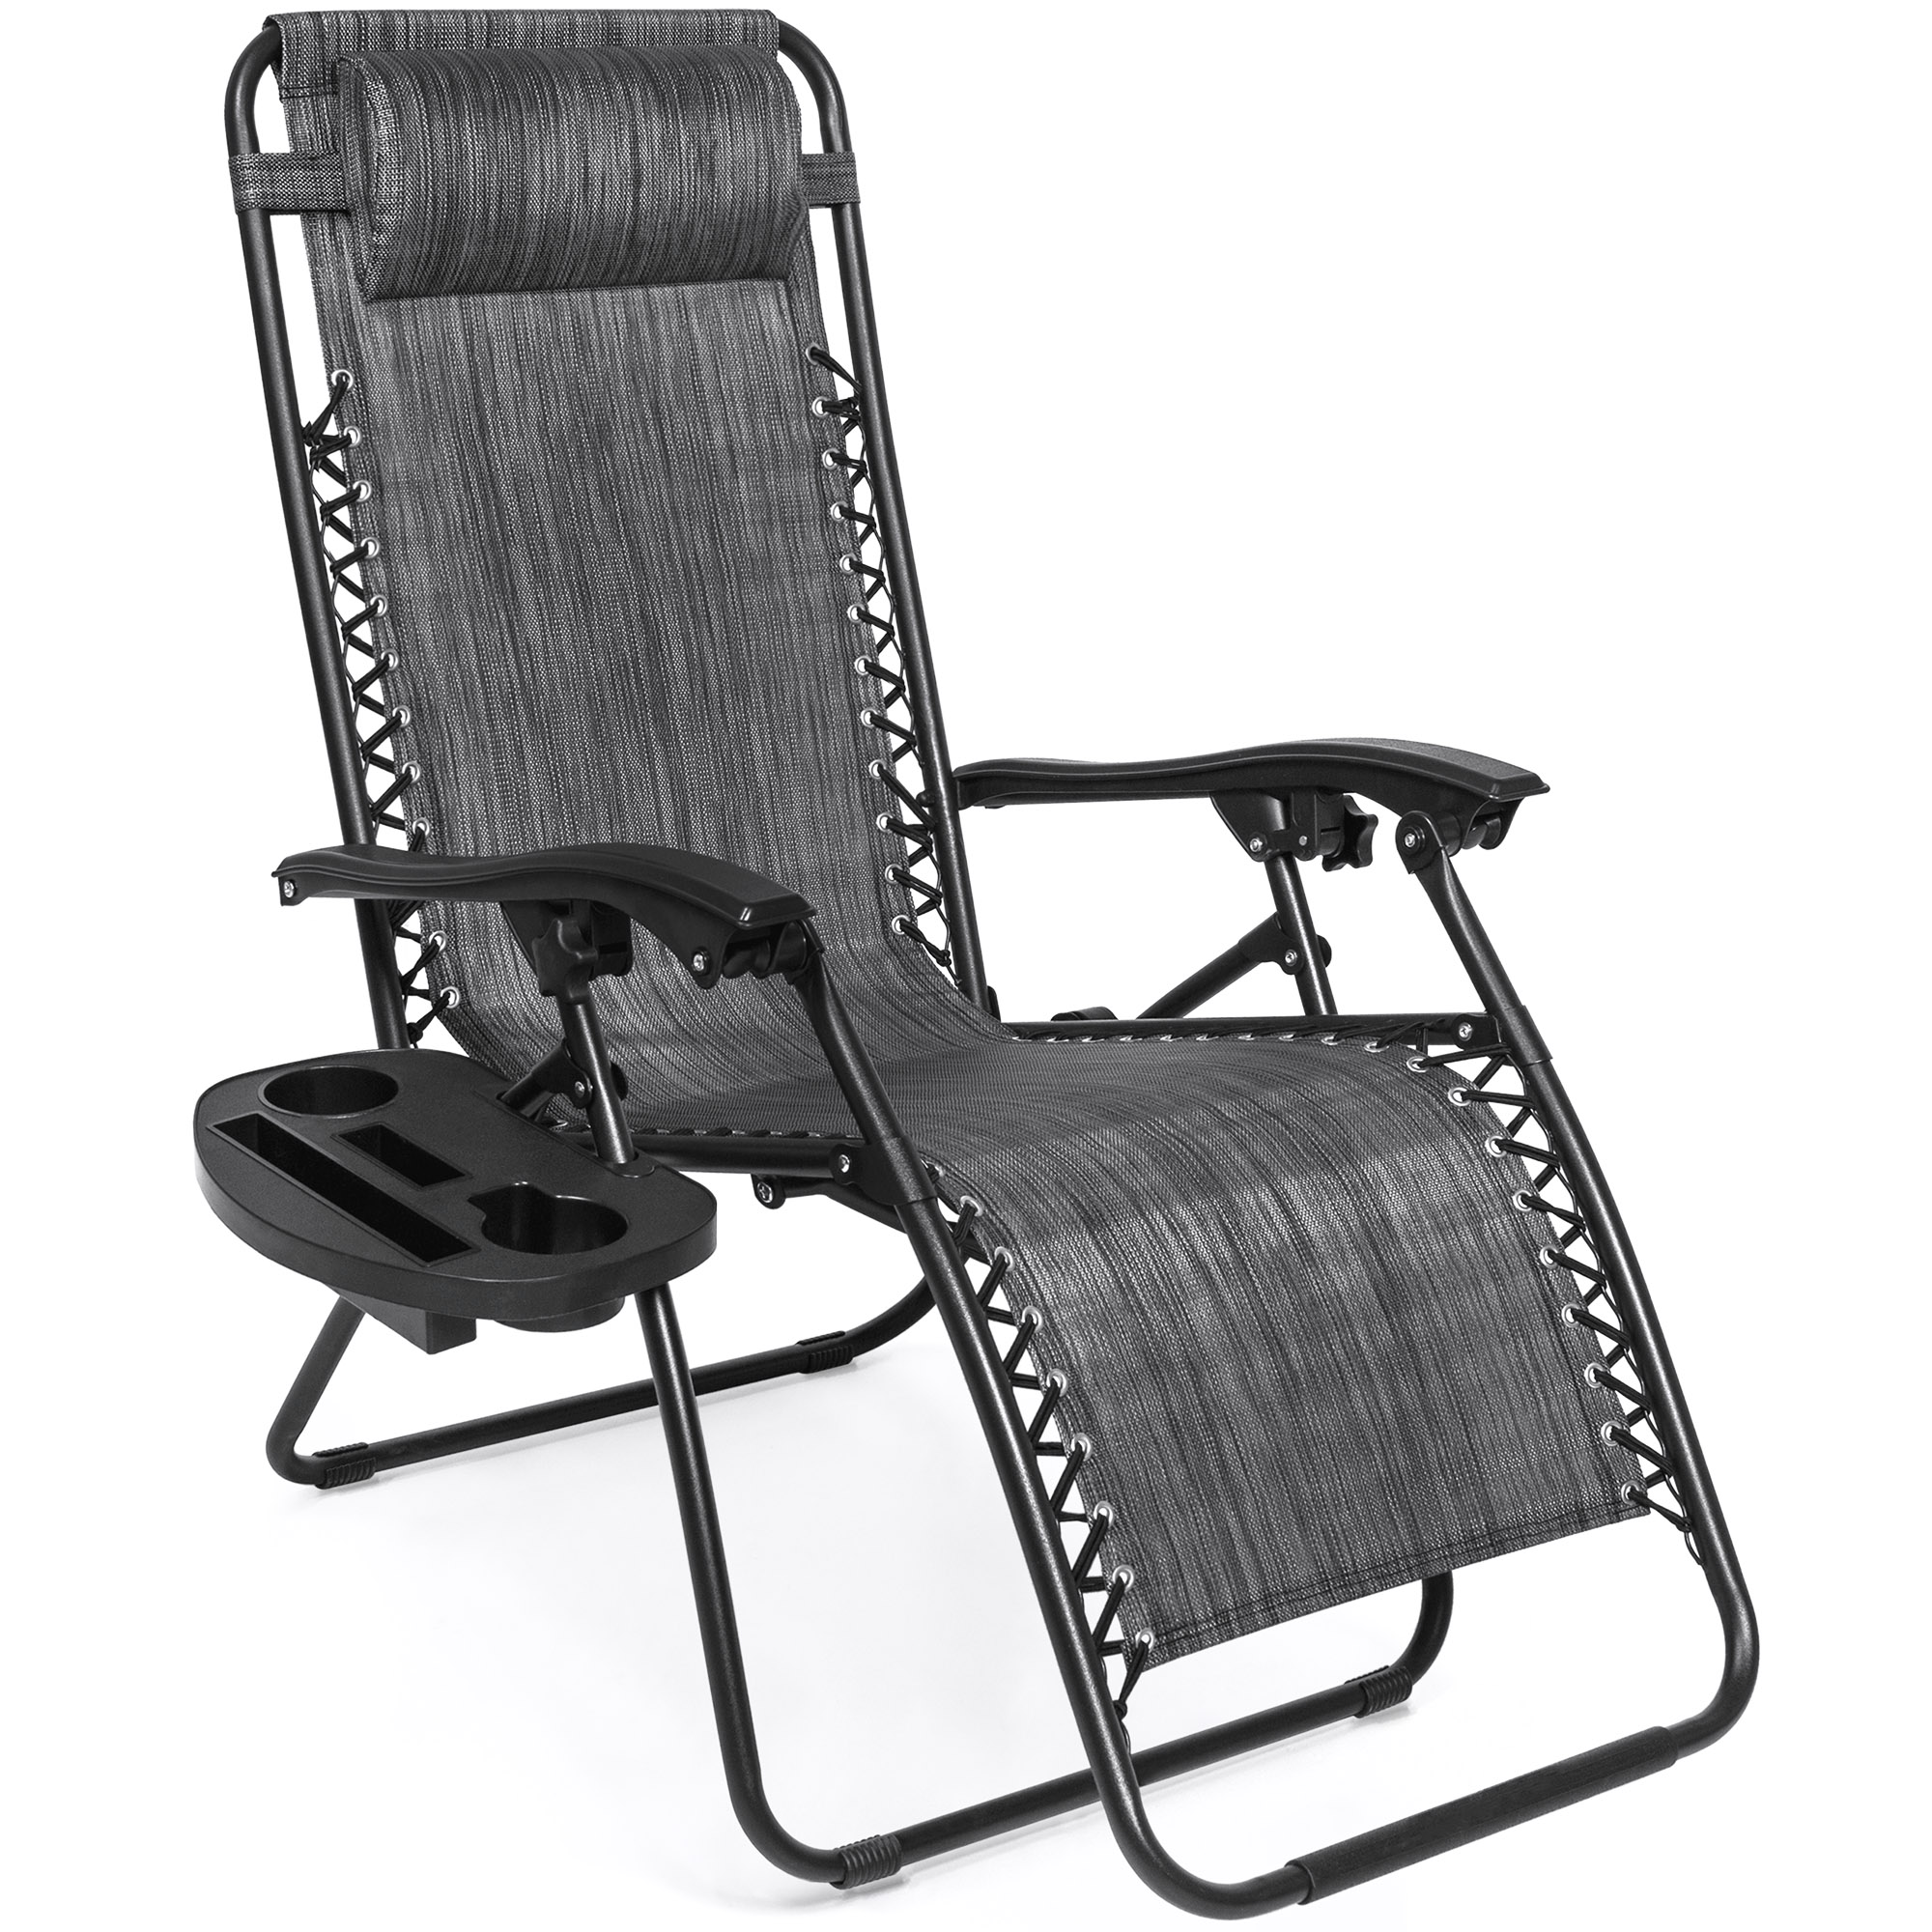 BCP-Set-of-2-Adjustable-Zero-Gravity-Patio-Chair-Recliners-w-Cup-Holders thumbnail 45